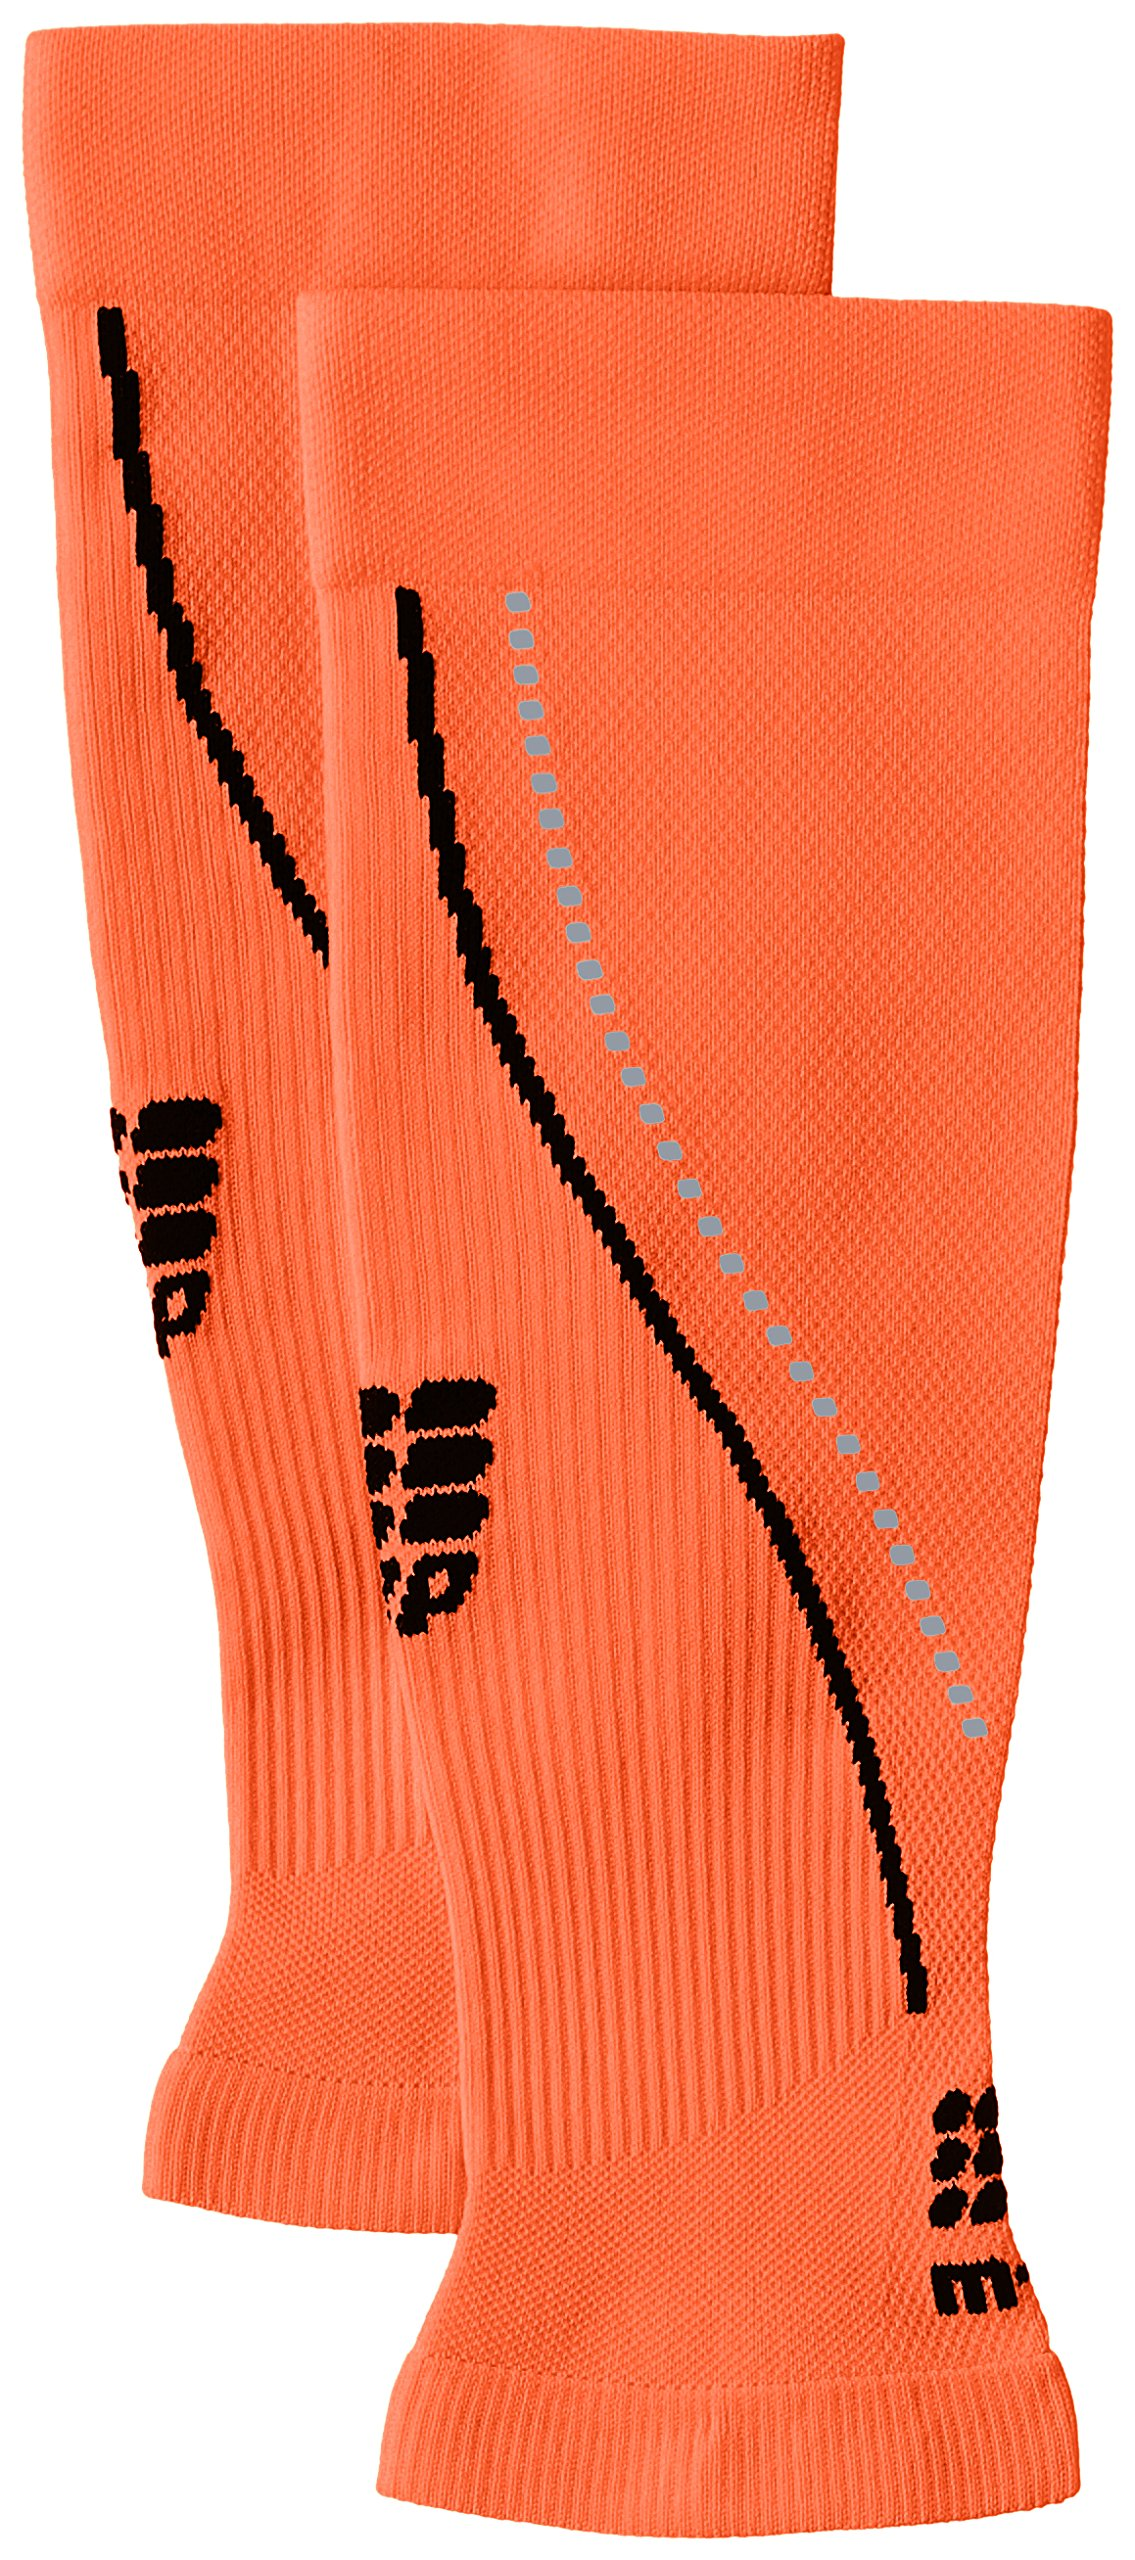 CEP Men's Progressive+ Night Calf Sleeves 2.0 Provide Unique Compression Technology for Running, Cross Training, Fitness, Calf Injuries, Shin Splits, Recovery and Athletics, 20-30mmHg , Flash Orange/Black , IV